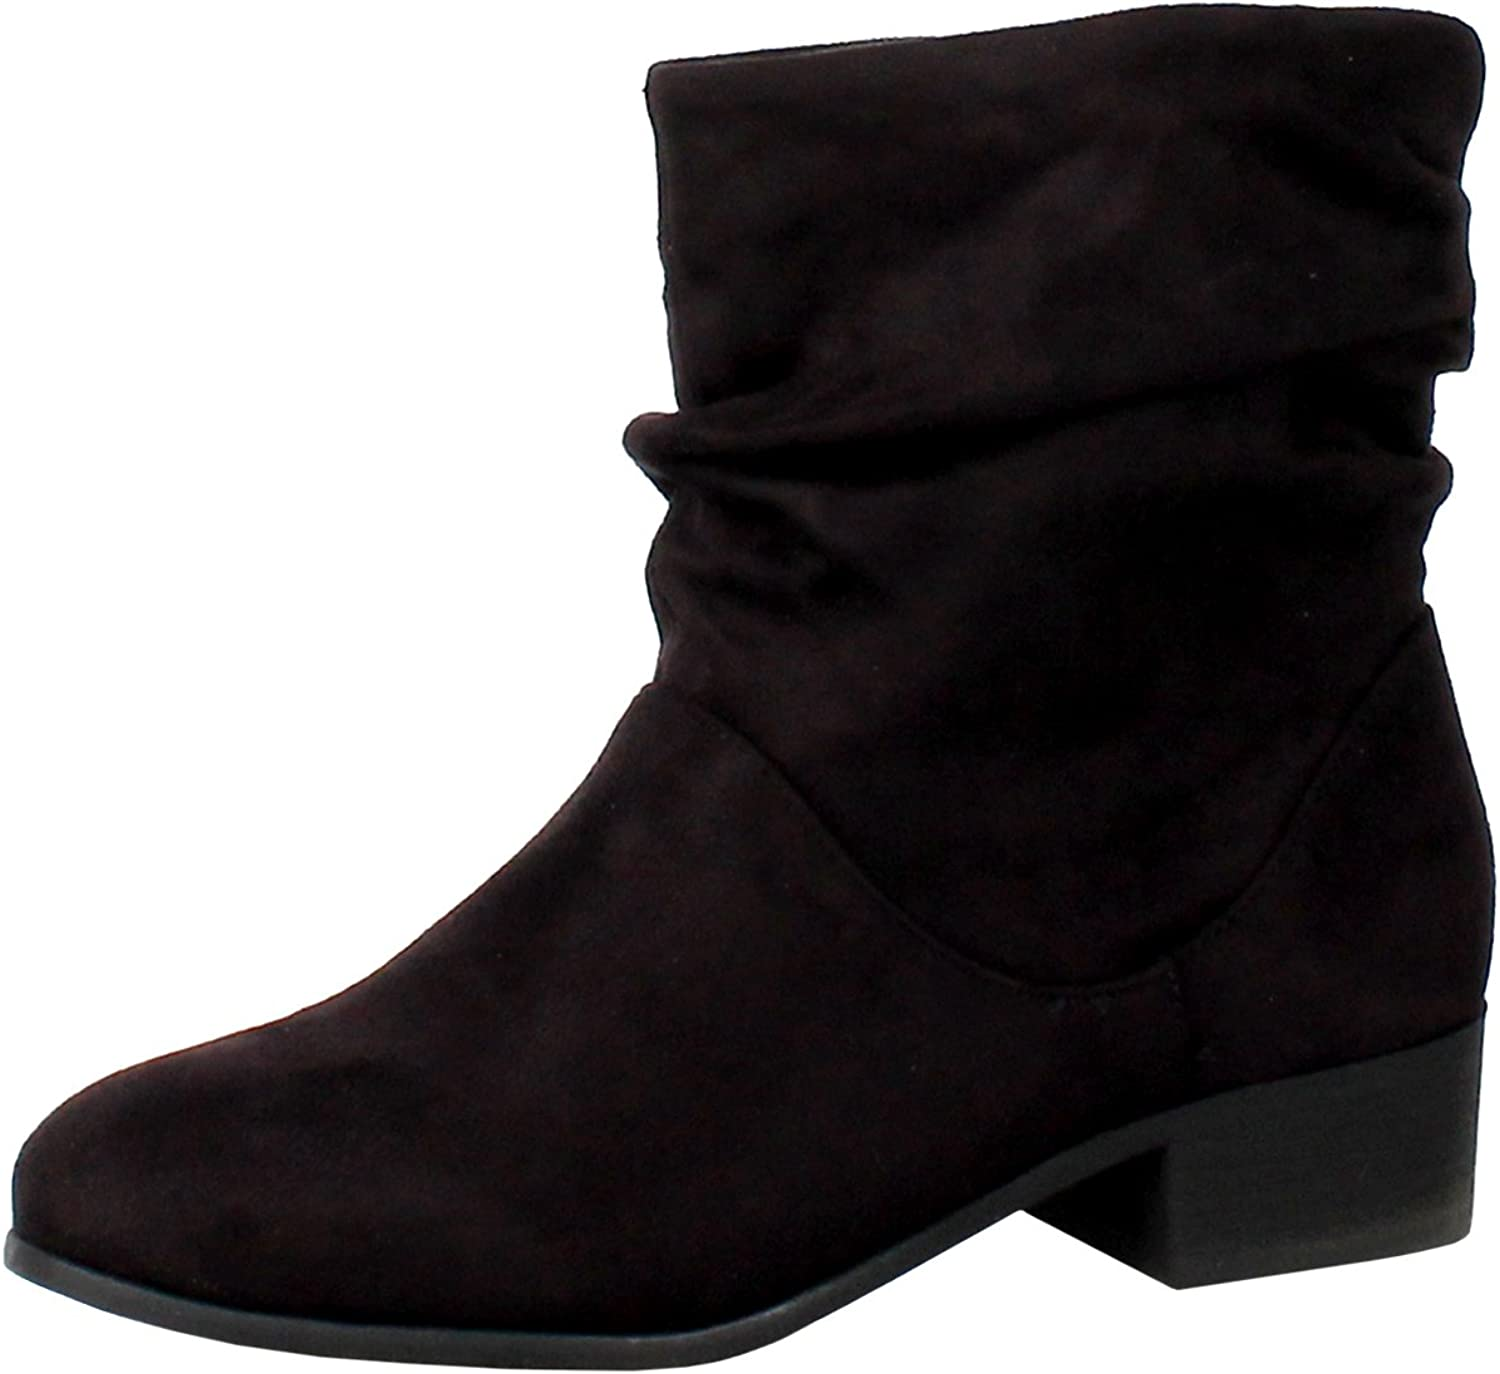 Vintage Boots- Buy Winter Retro Boots Soda Energy Womens Slouchy Pull On Low Block Heel Ankle Booties $37.71 AT vintagedancer.com